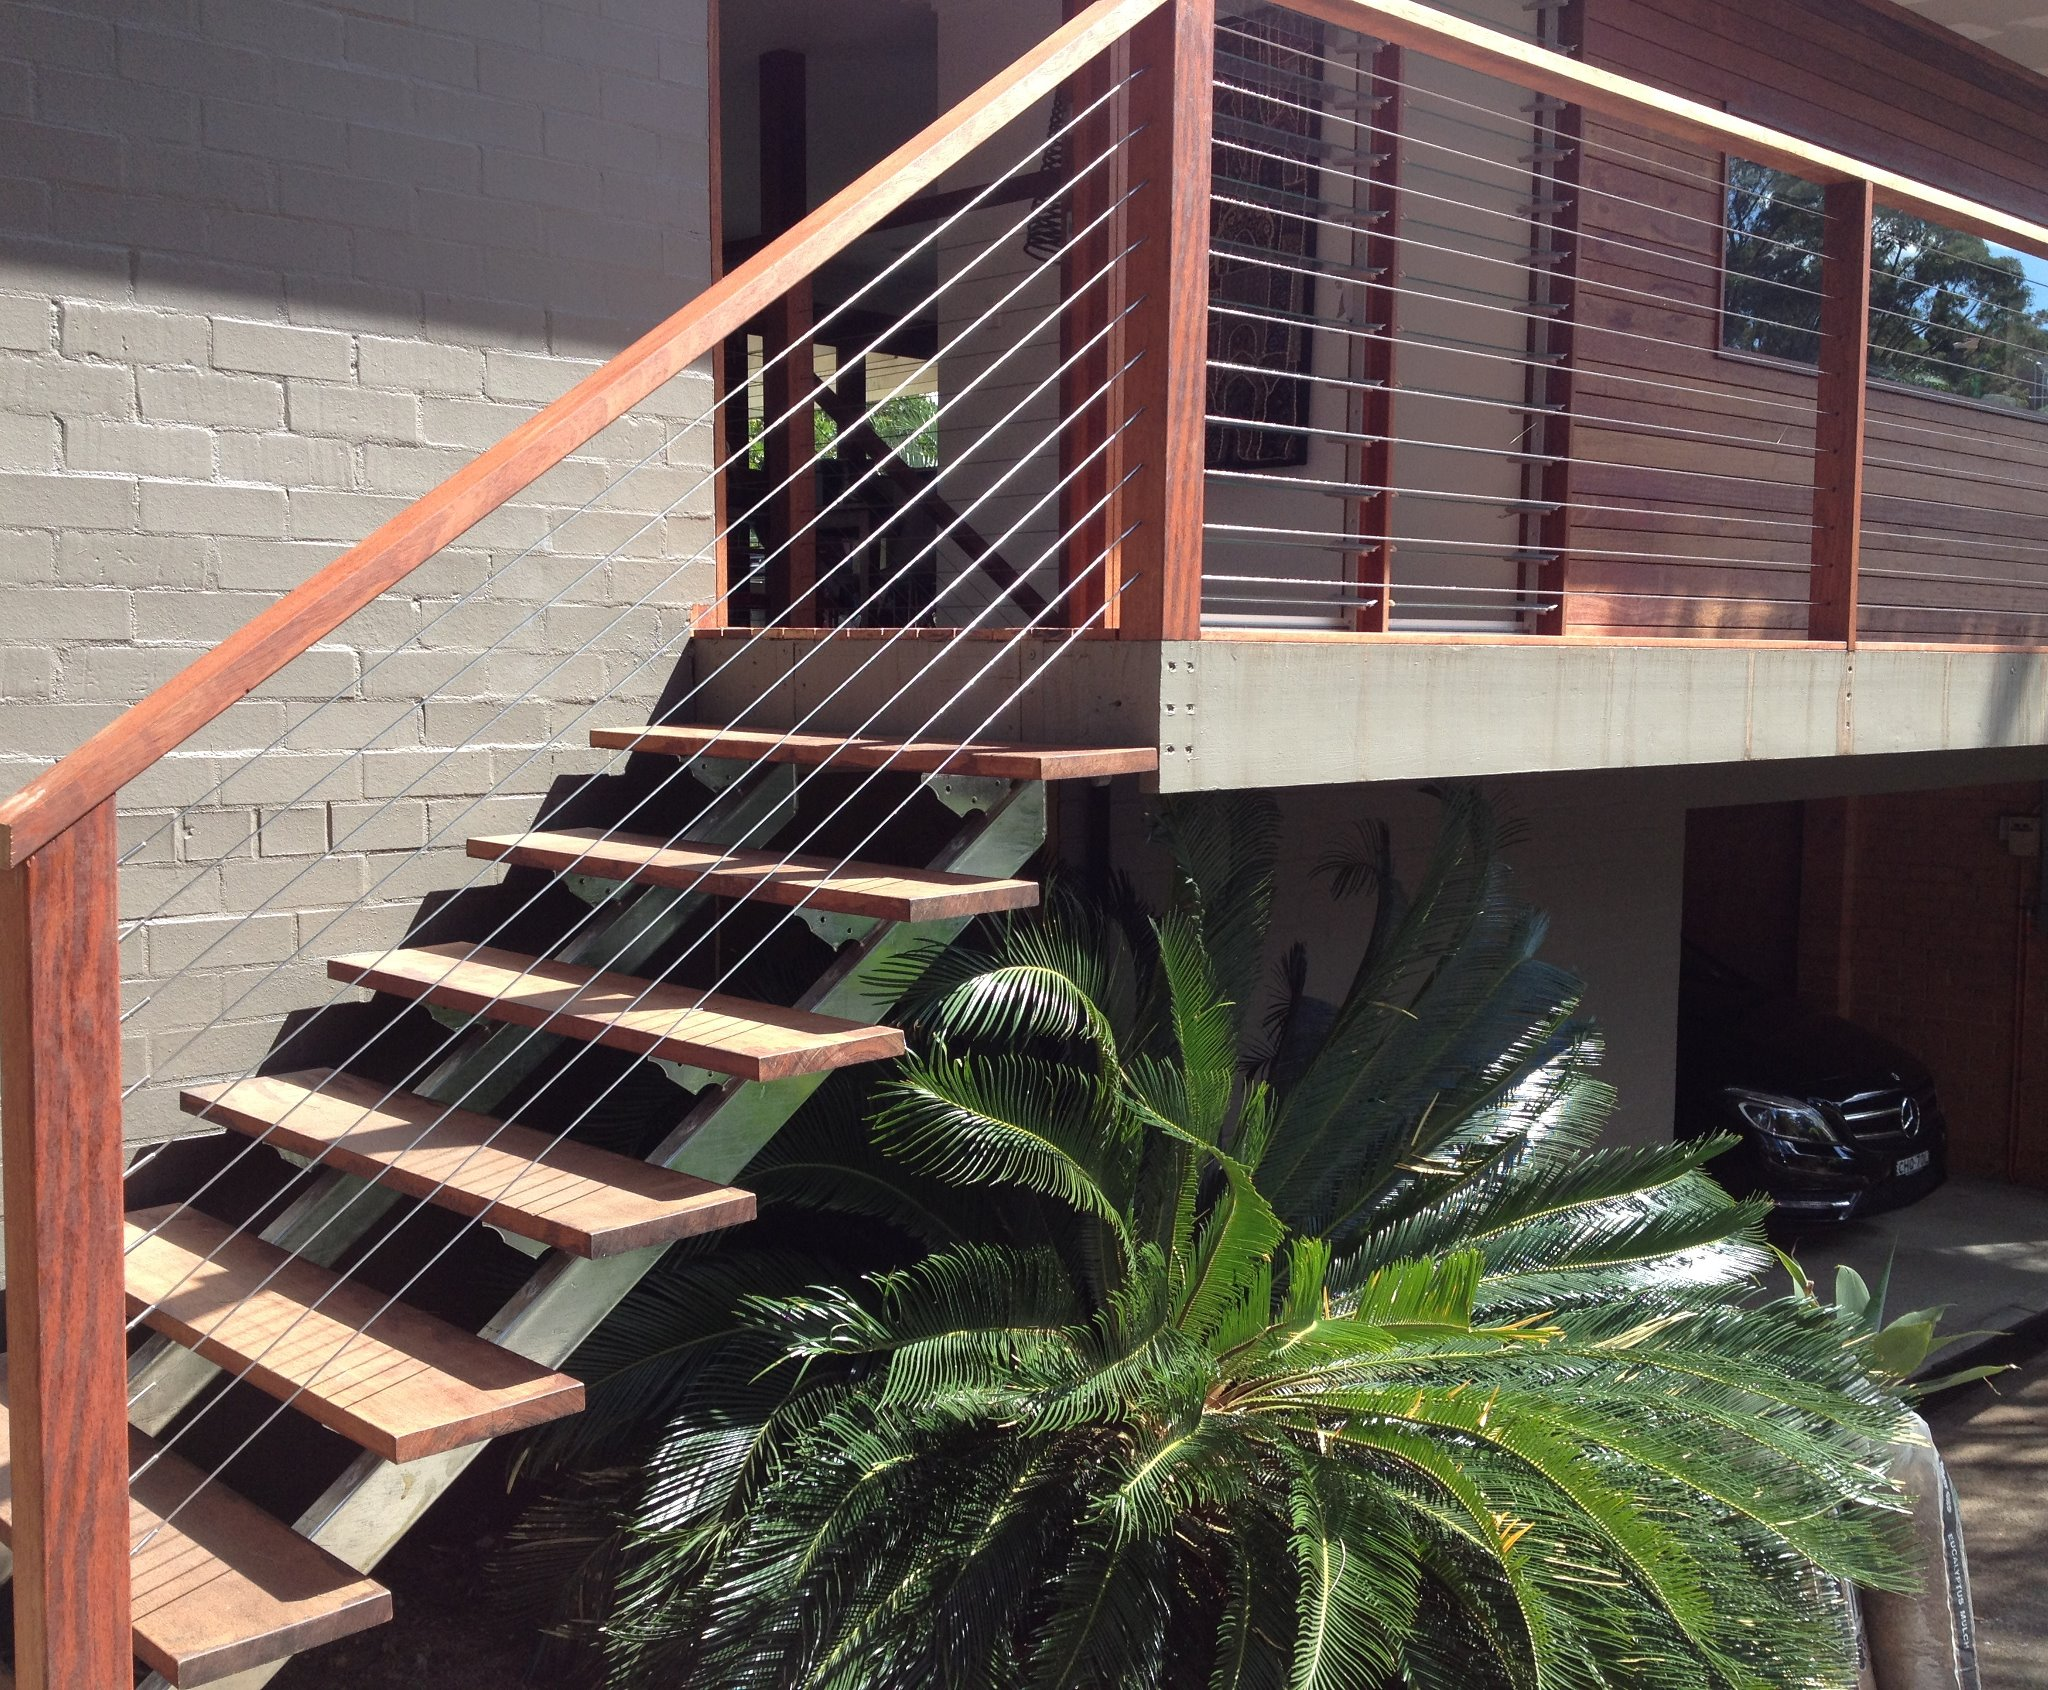 http://www.shanesstainless.com.au/q-railing-balustrade-and-handrail-systems/easy-glass-diy-balustrade-systems/easy-glass-self-install-glass-balustrading-by-q-railing.html